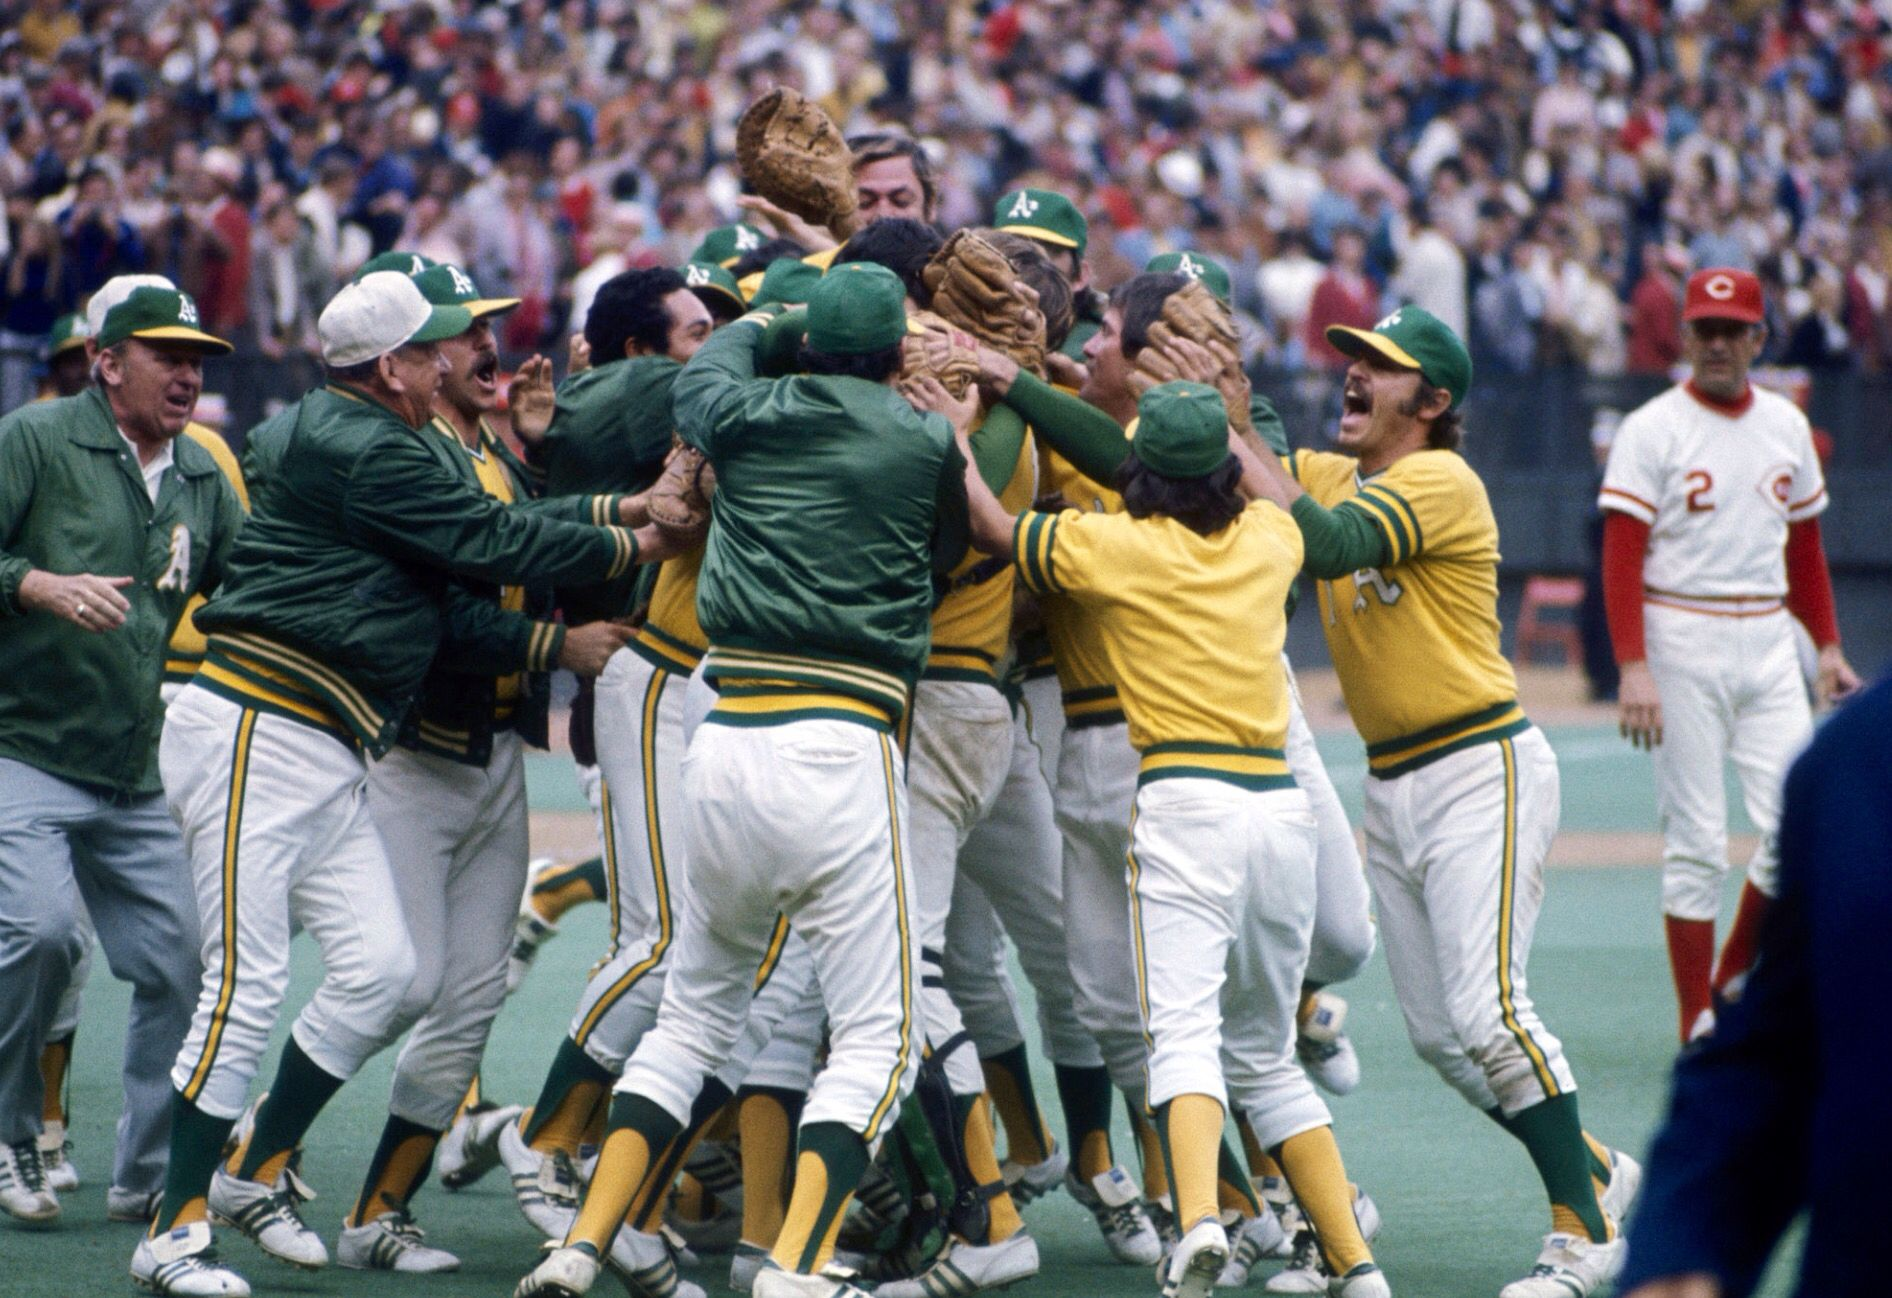 Oakland wins the 1972 World Series | Oakland athletics, Oakland athletics  baseball, Athletics baseball